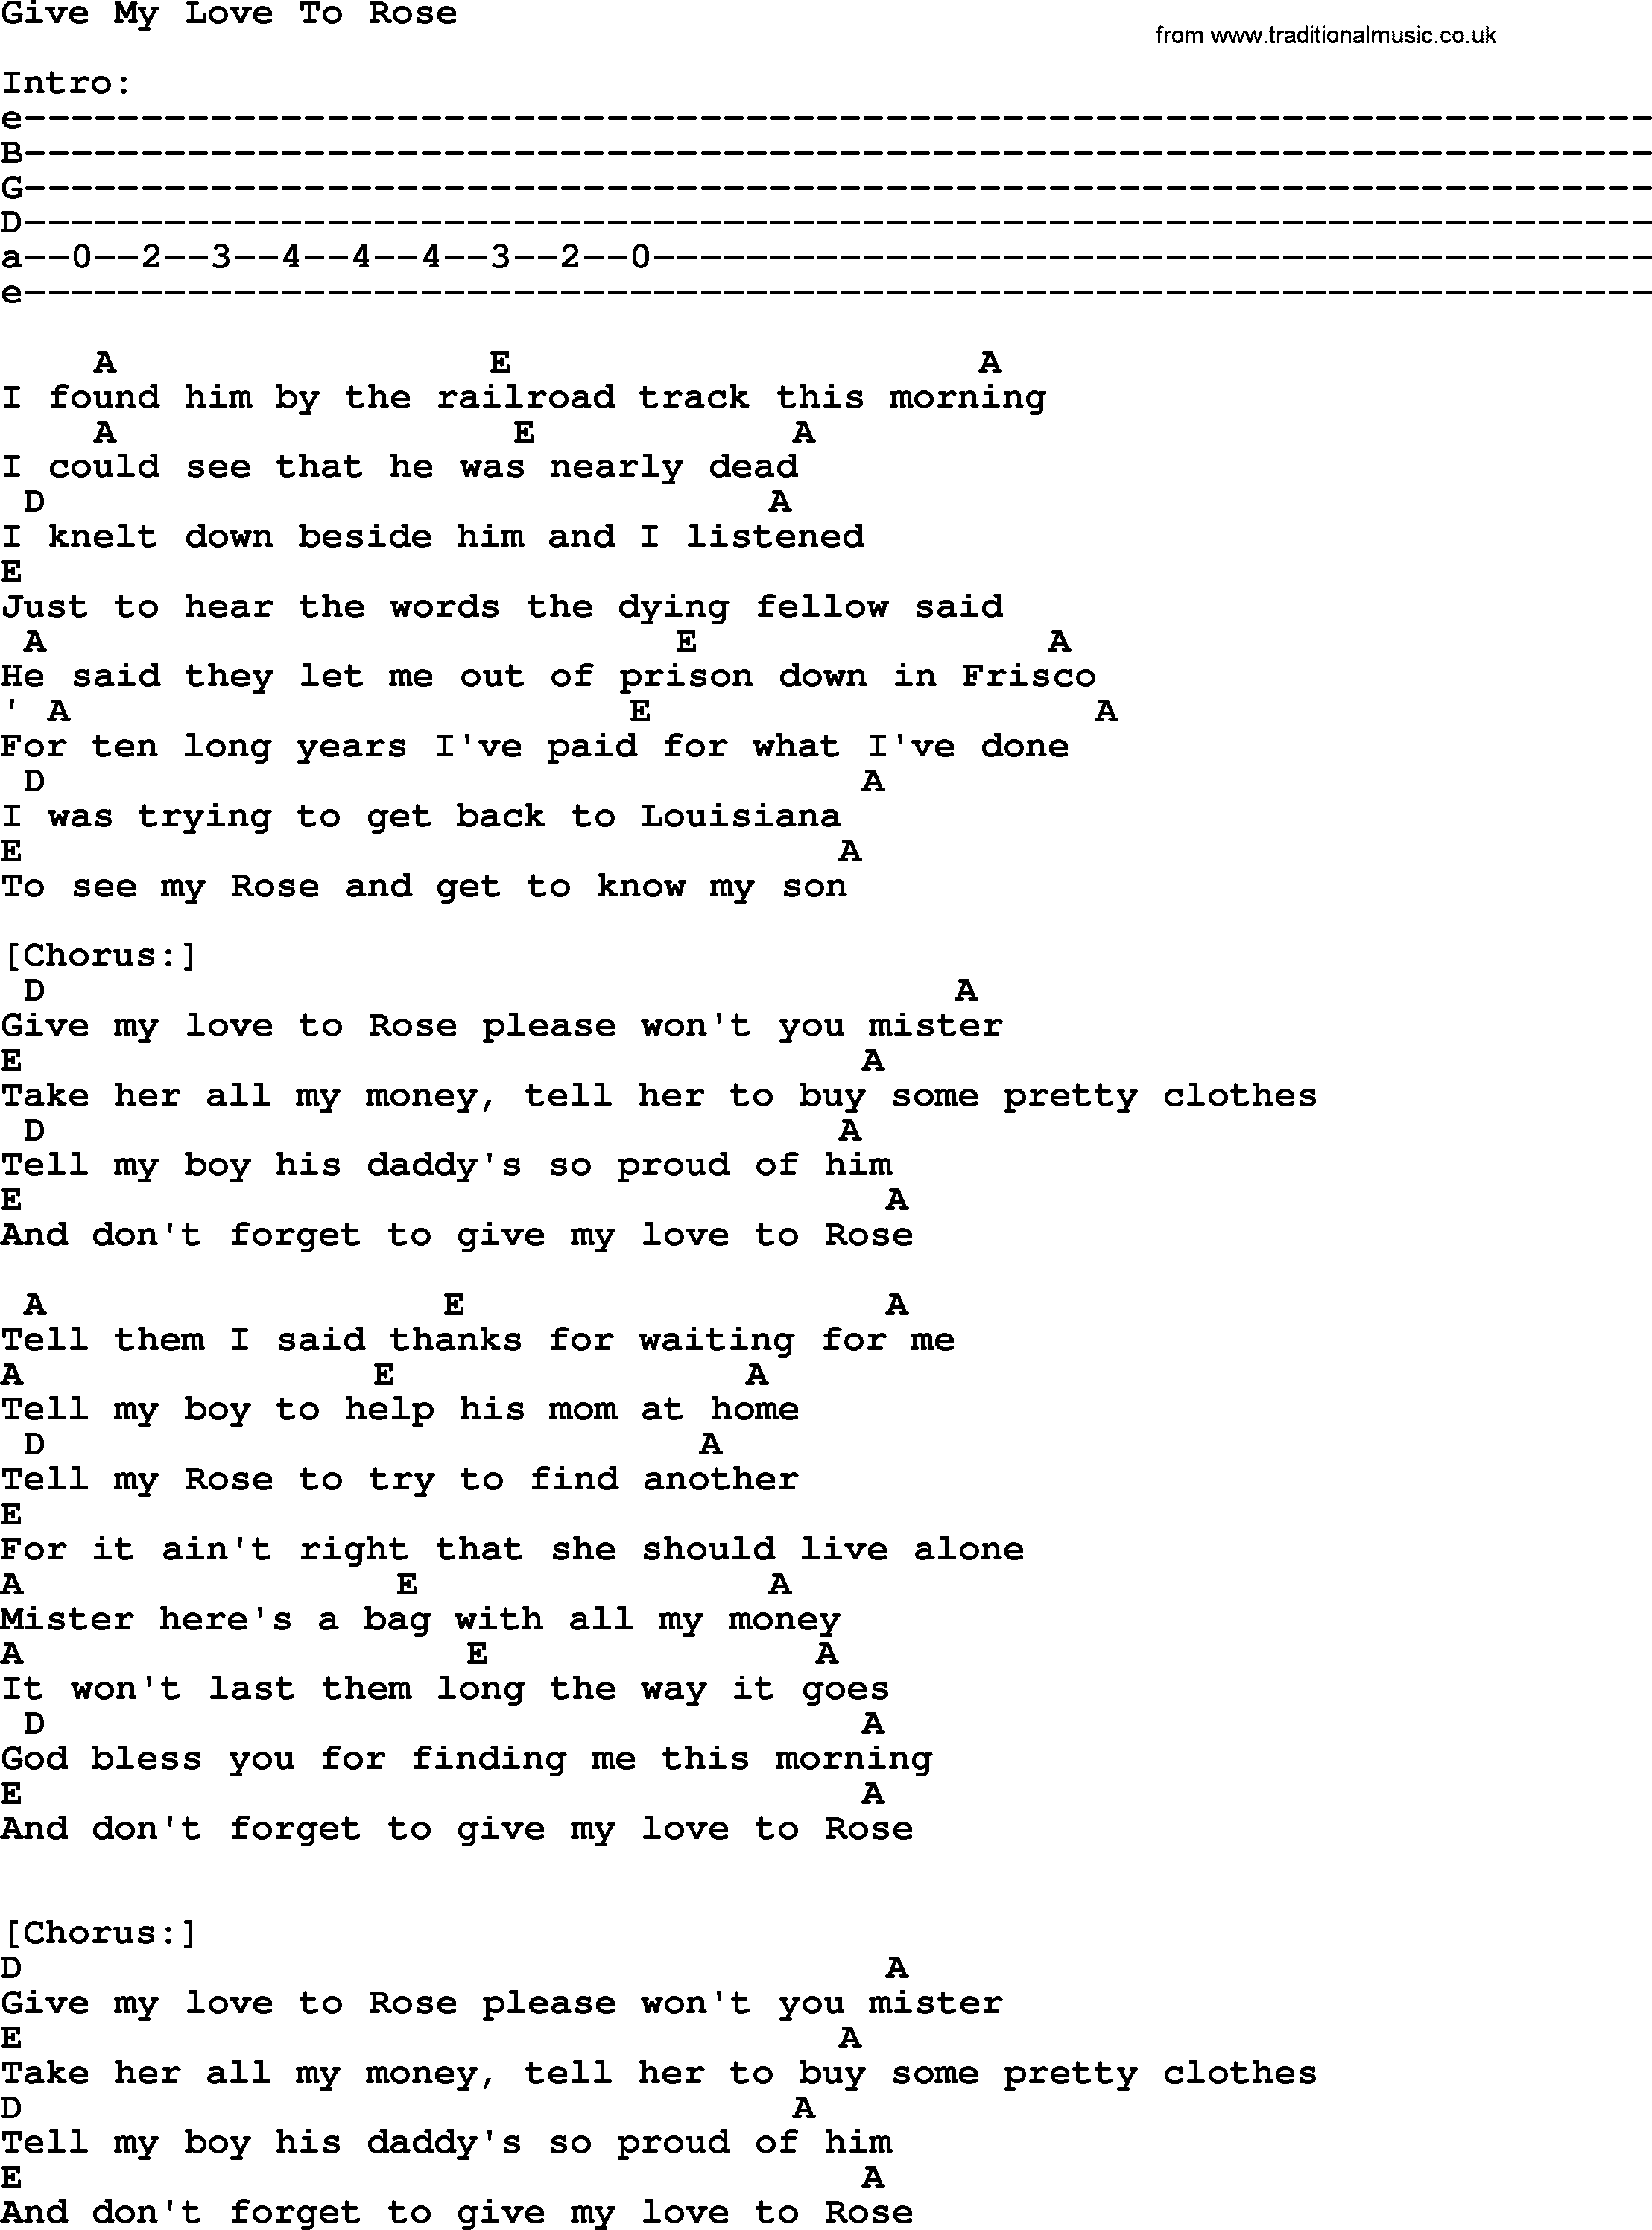 Johnny Cash song: Give My Love To Rose, lyrics and chords